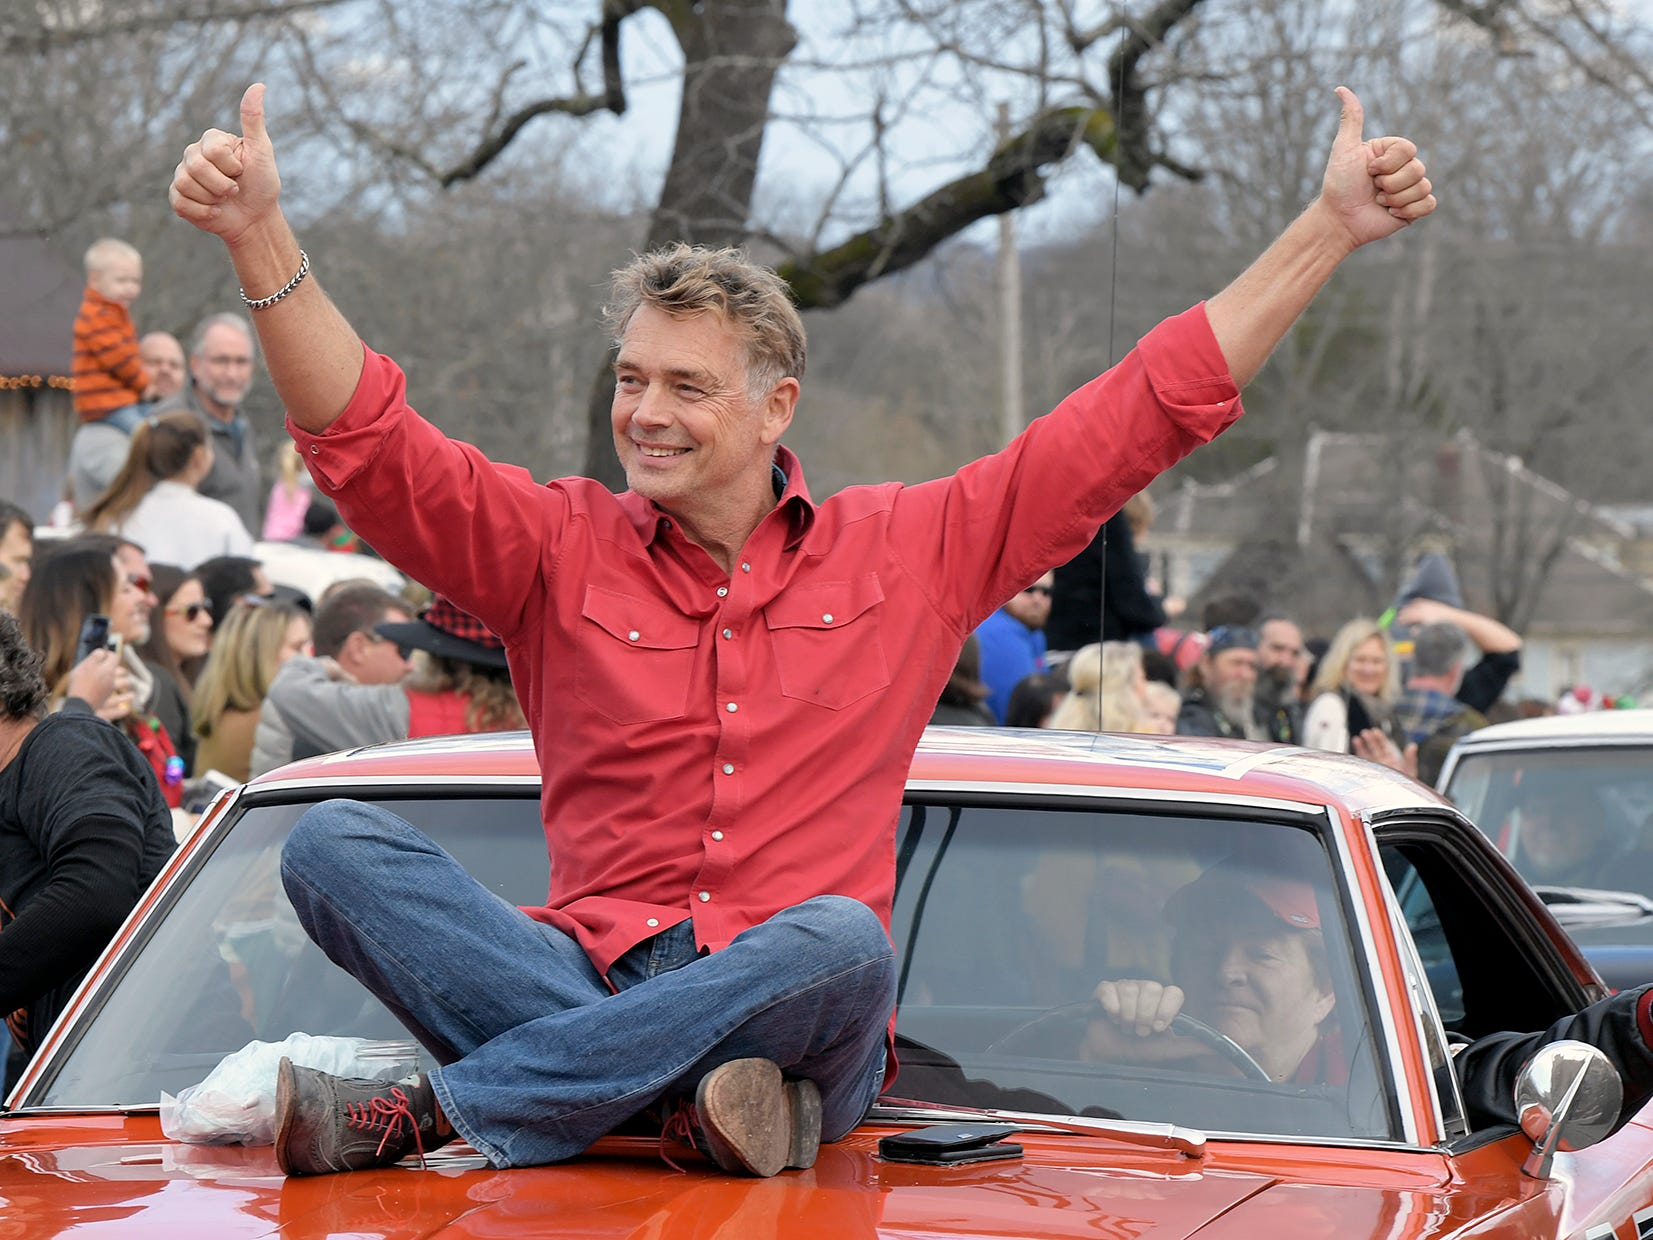 John Schneider from the Dukes of Hazzard was the Grand Marshal of Leipers Fork Christmas Parade on Saturday, Dec. 15, 2018.